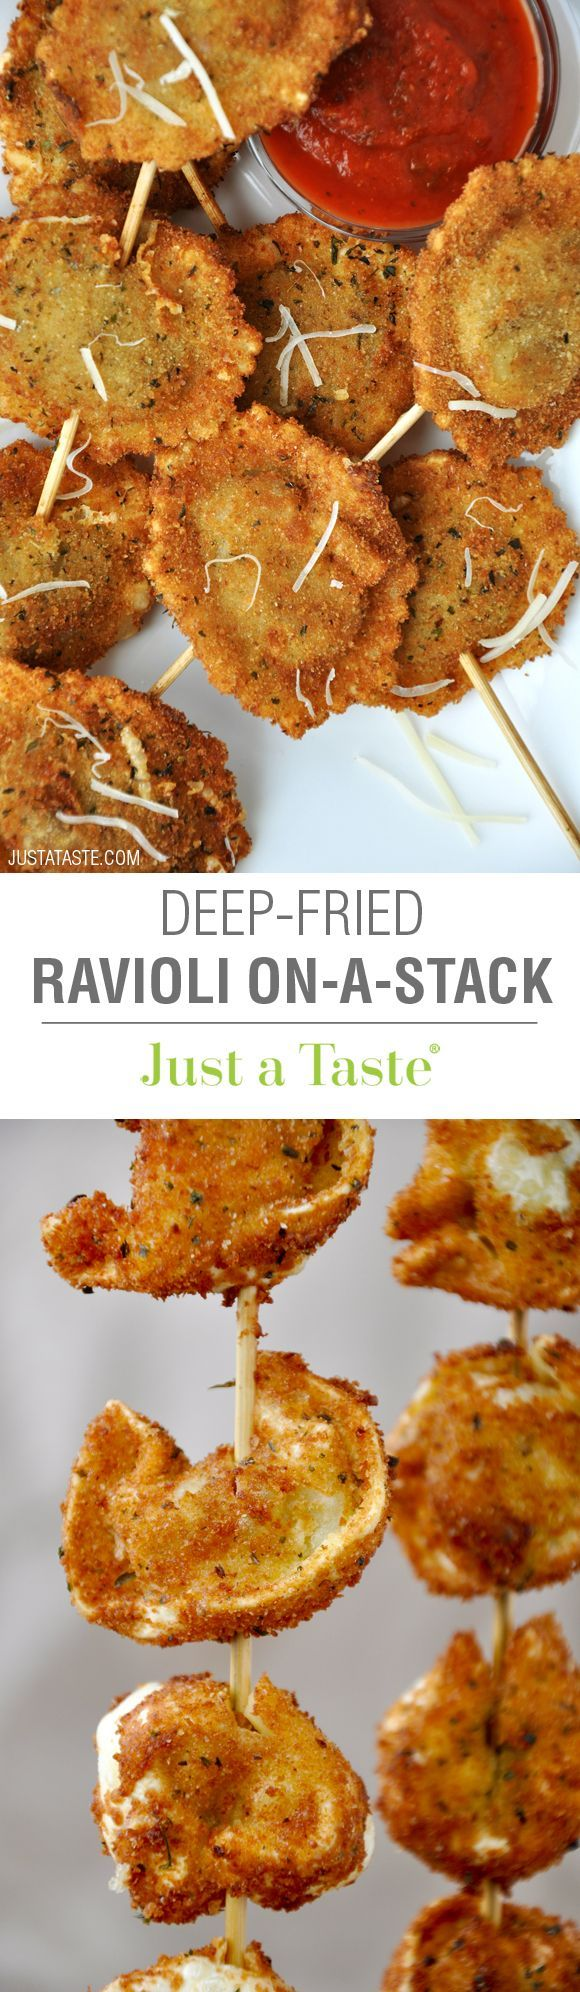 Deep-Fried Ravioli On-a-Stick #recipe via justataste.com